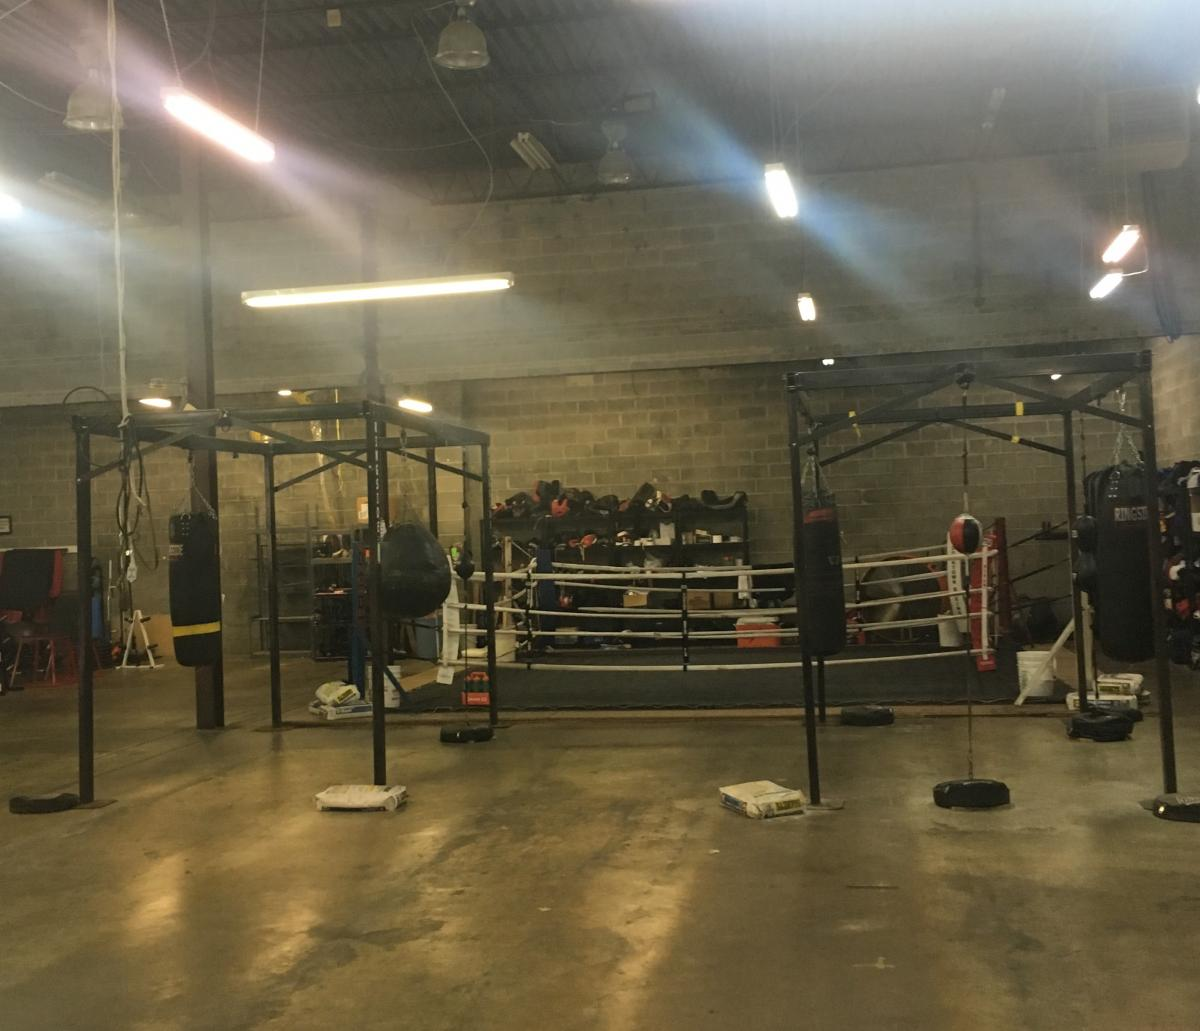 inside the boxing gym